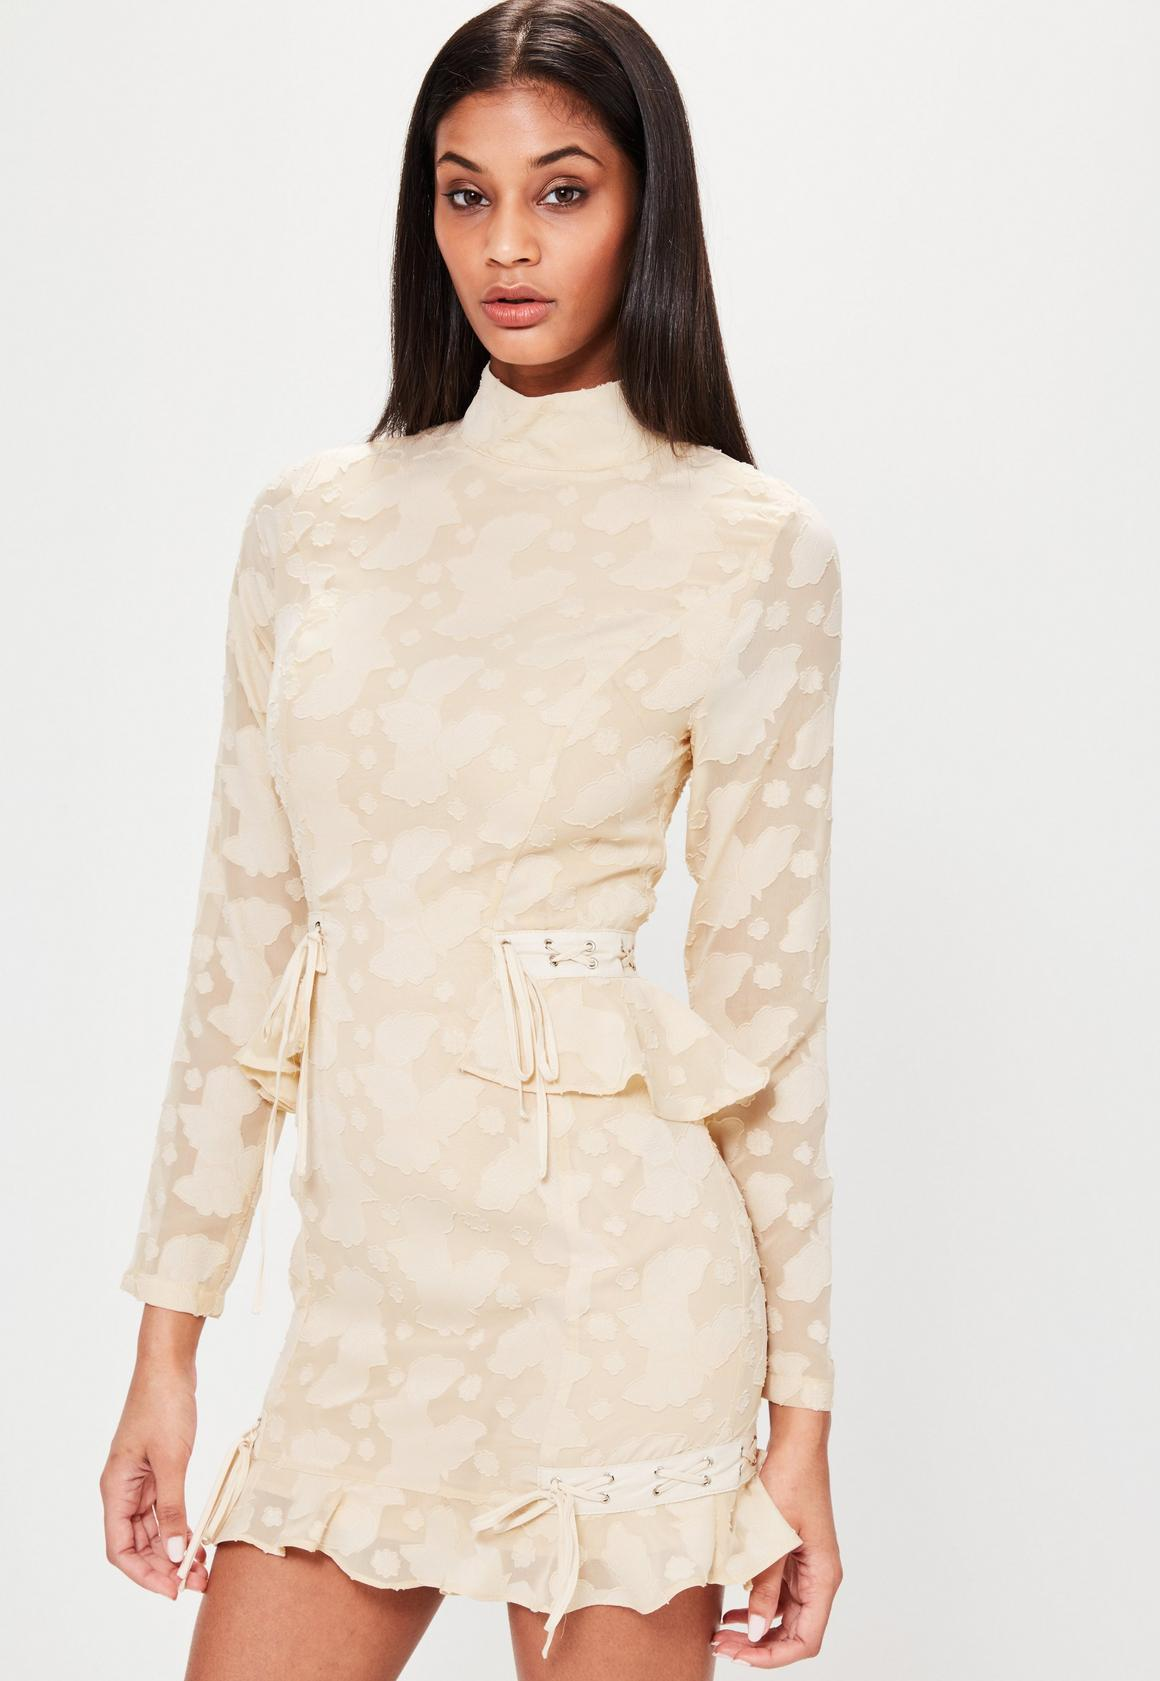 Nude High Neck Frill Hem Lace Bodycon Dress | Missguided